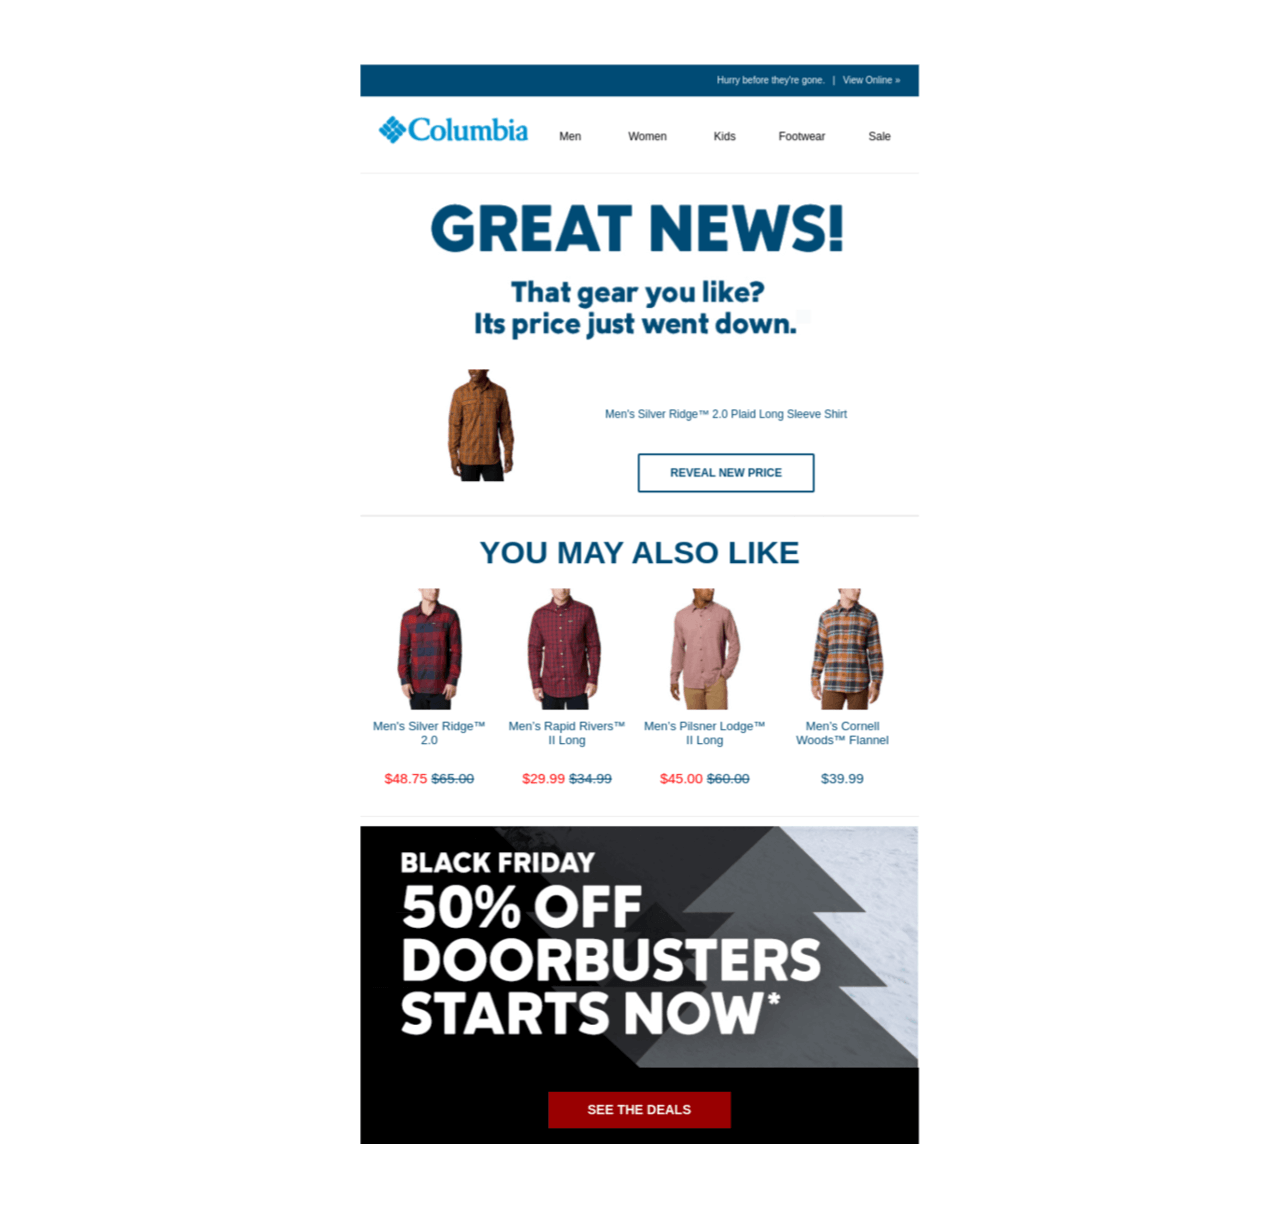 Columbia used personalized emails to drive their customers' attention to their Black Friday sale